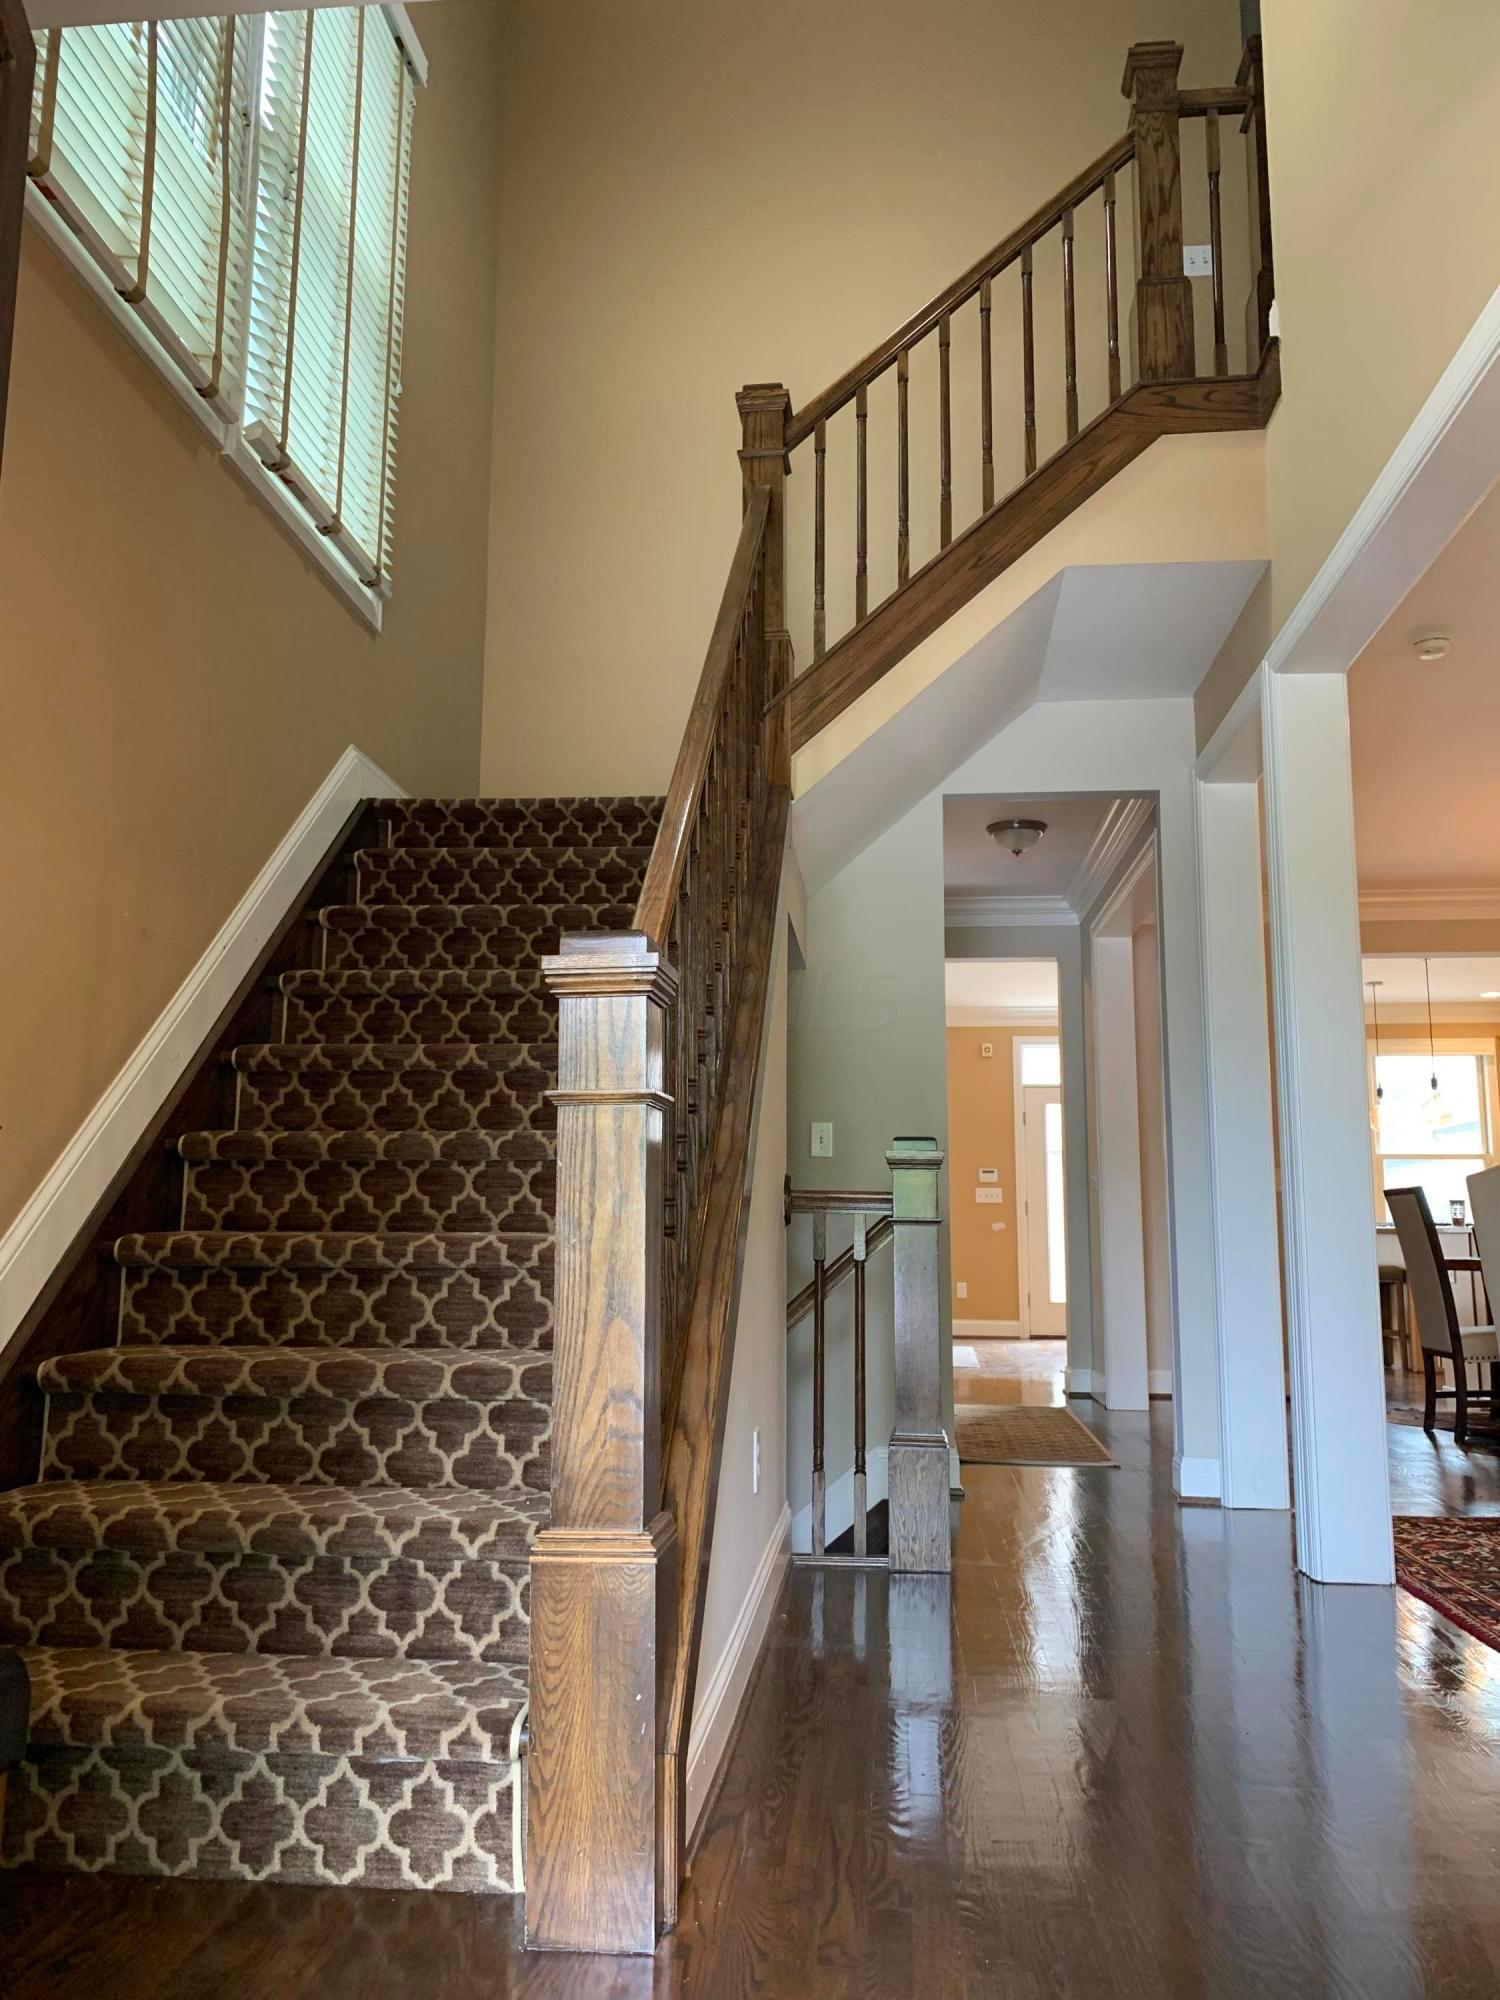 1006 Harrison Park Place, Columbus, Ohio 43201, 4 Bedrooms Bedrooms, ,5 BathroomsBathrooms,Residential,For Sale,Harrison Park,220028974